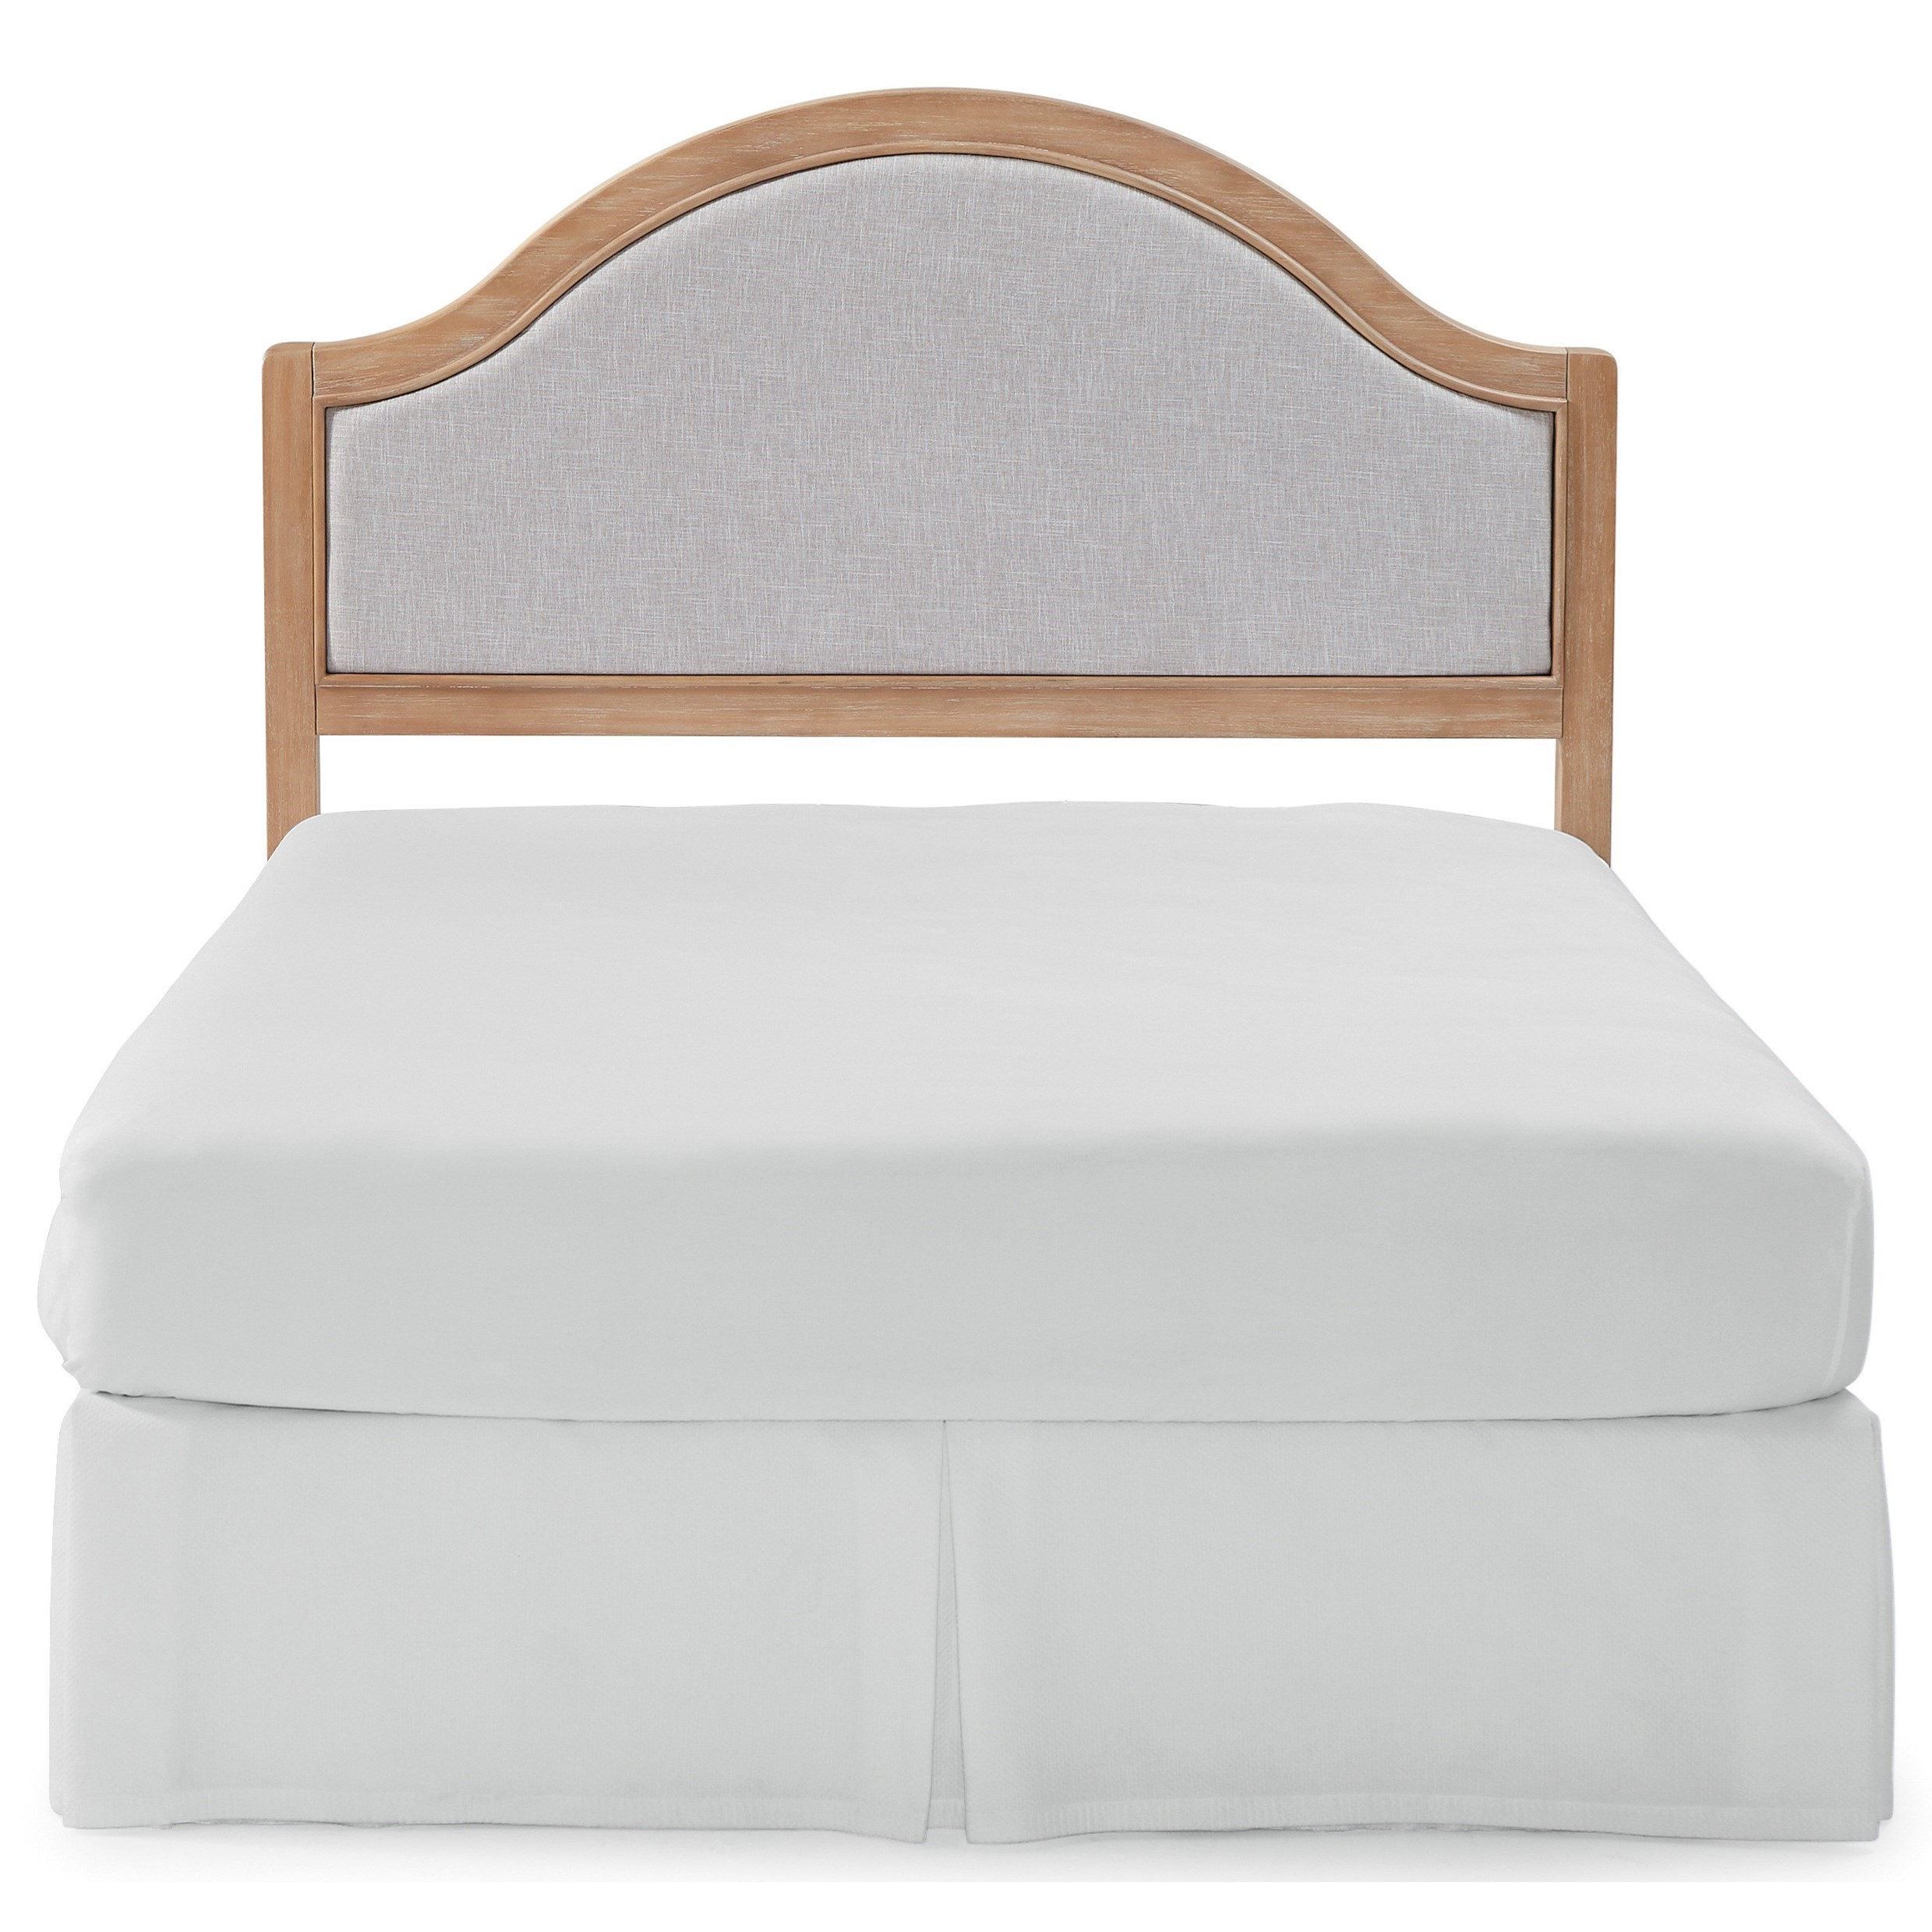 Cambridge Queen Headboard by Homestyles at Northeast Factory Direct